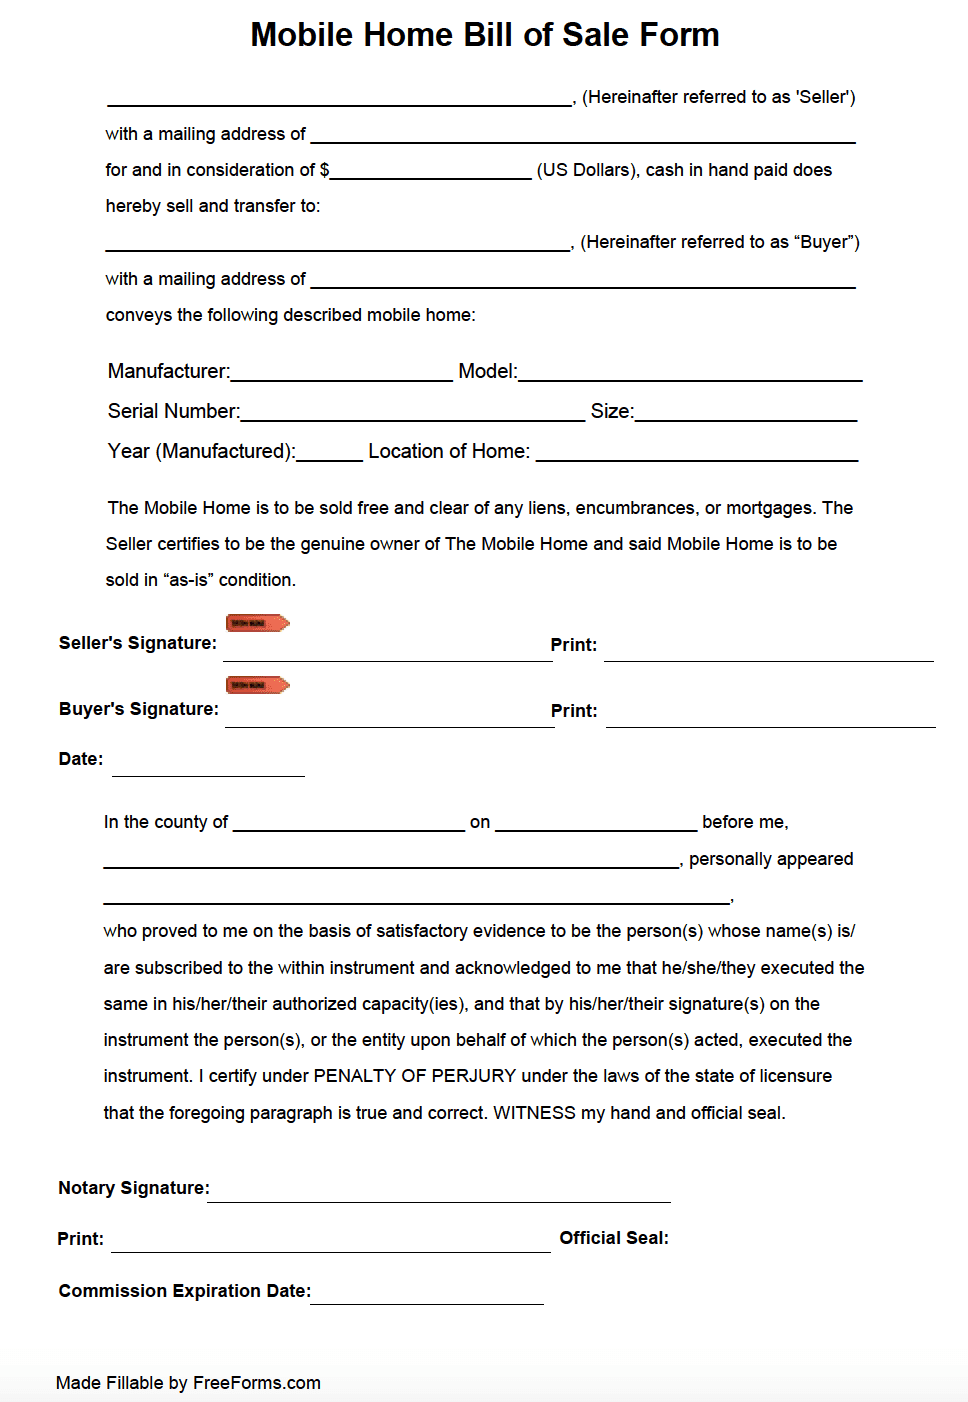 Free Mobile (Manufactured) Home Bill Of Sale Form | Pdf